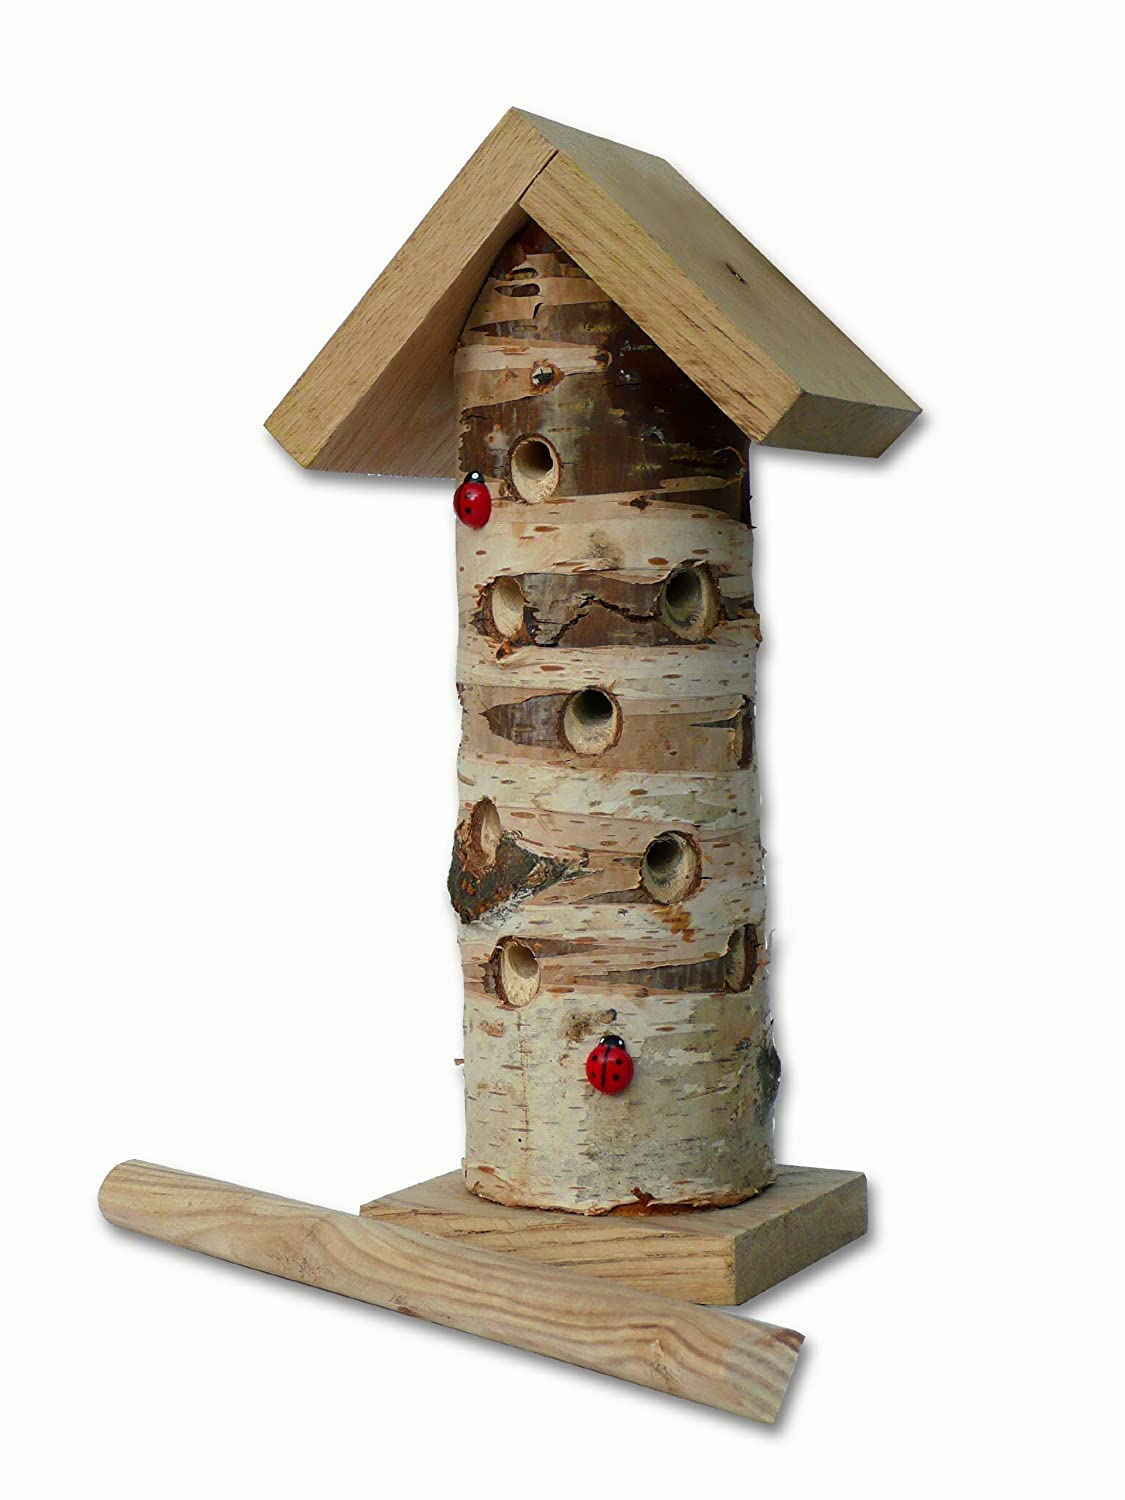 Wildlife World Ladybird Tower LBT Birds_and_Wildlife Wildlife Houses insect habitat